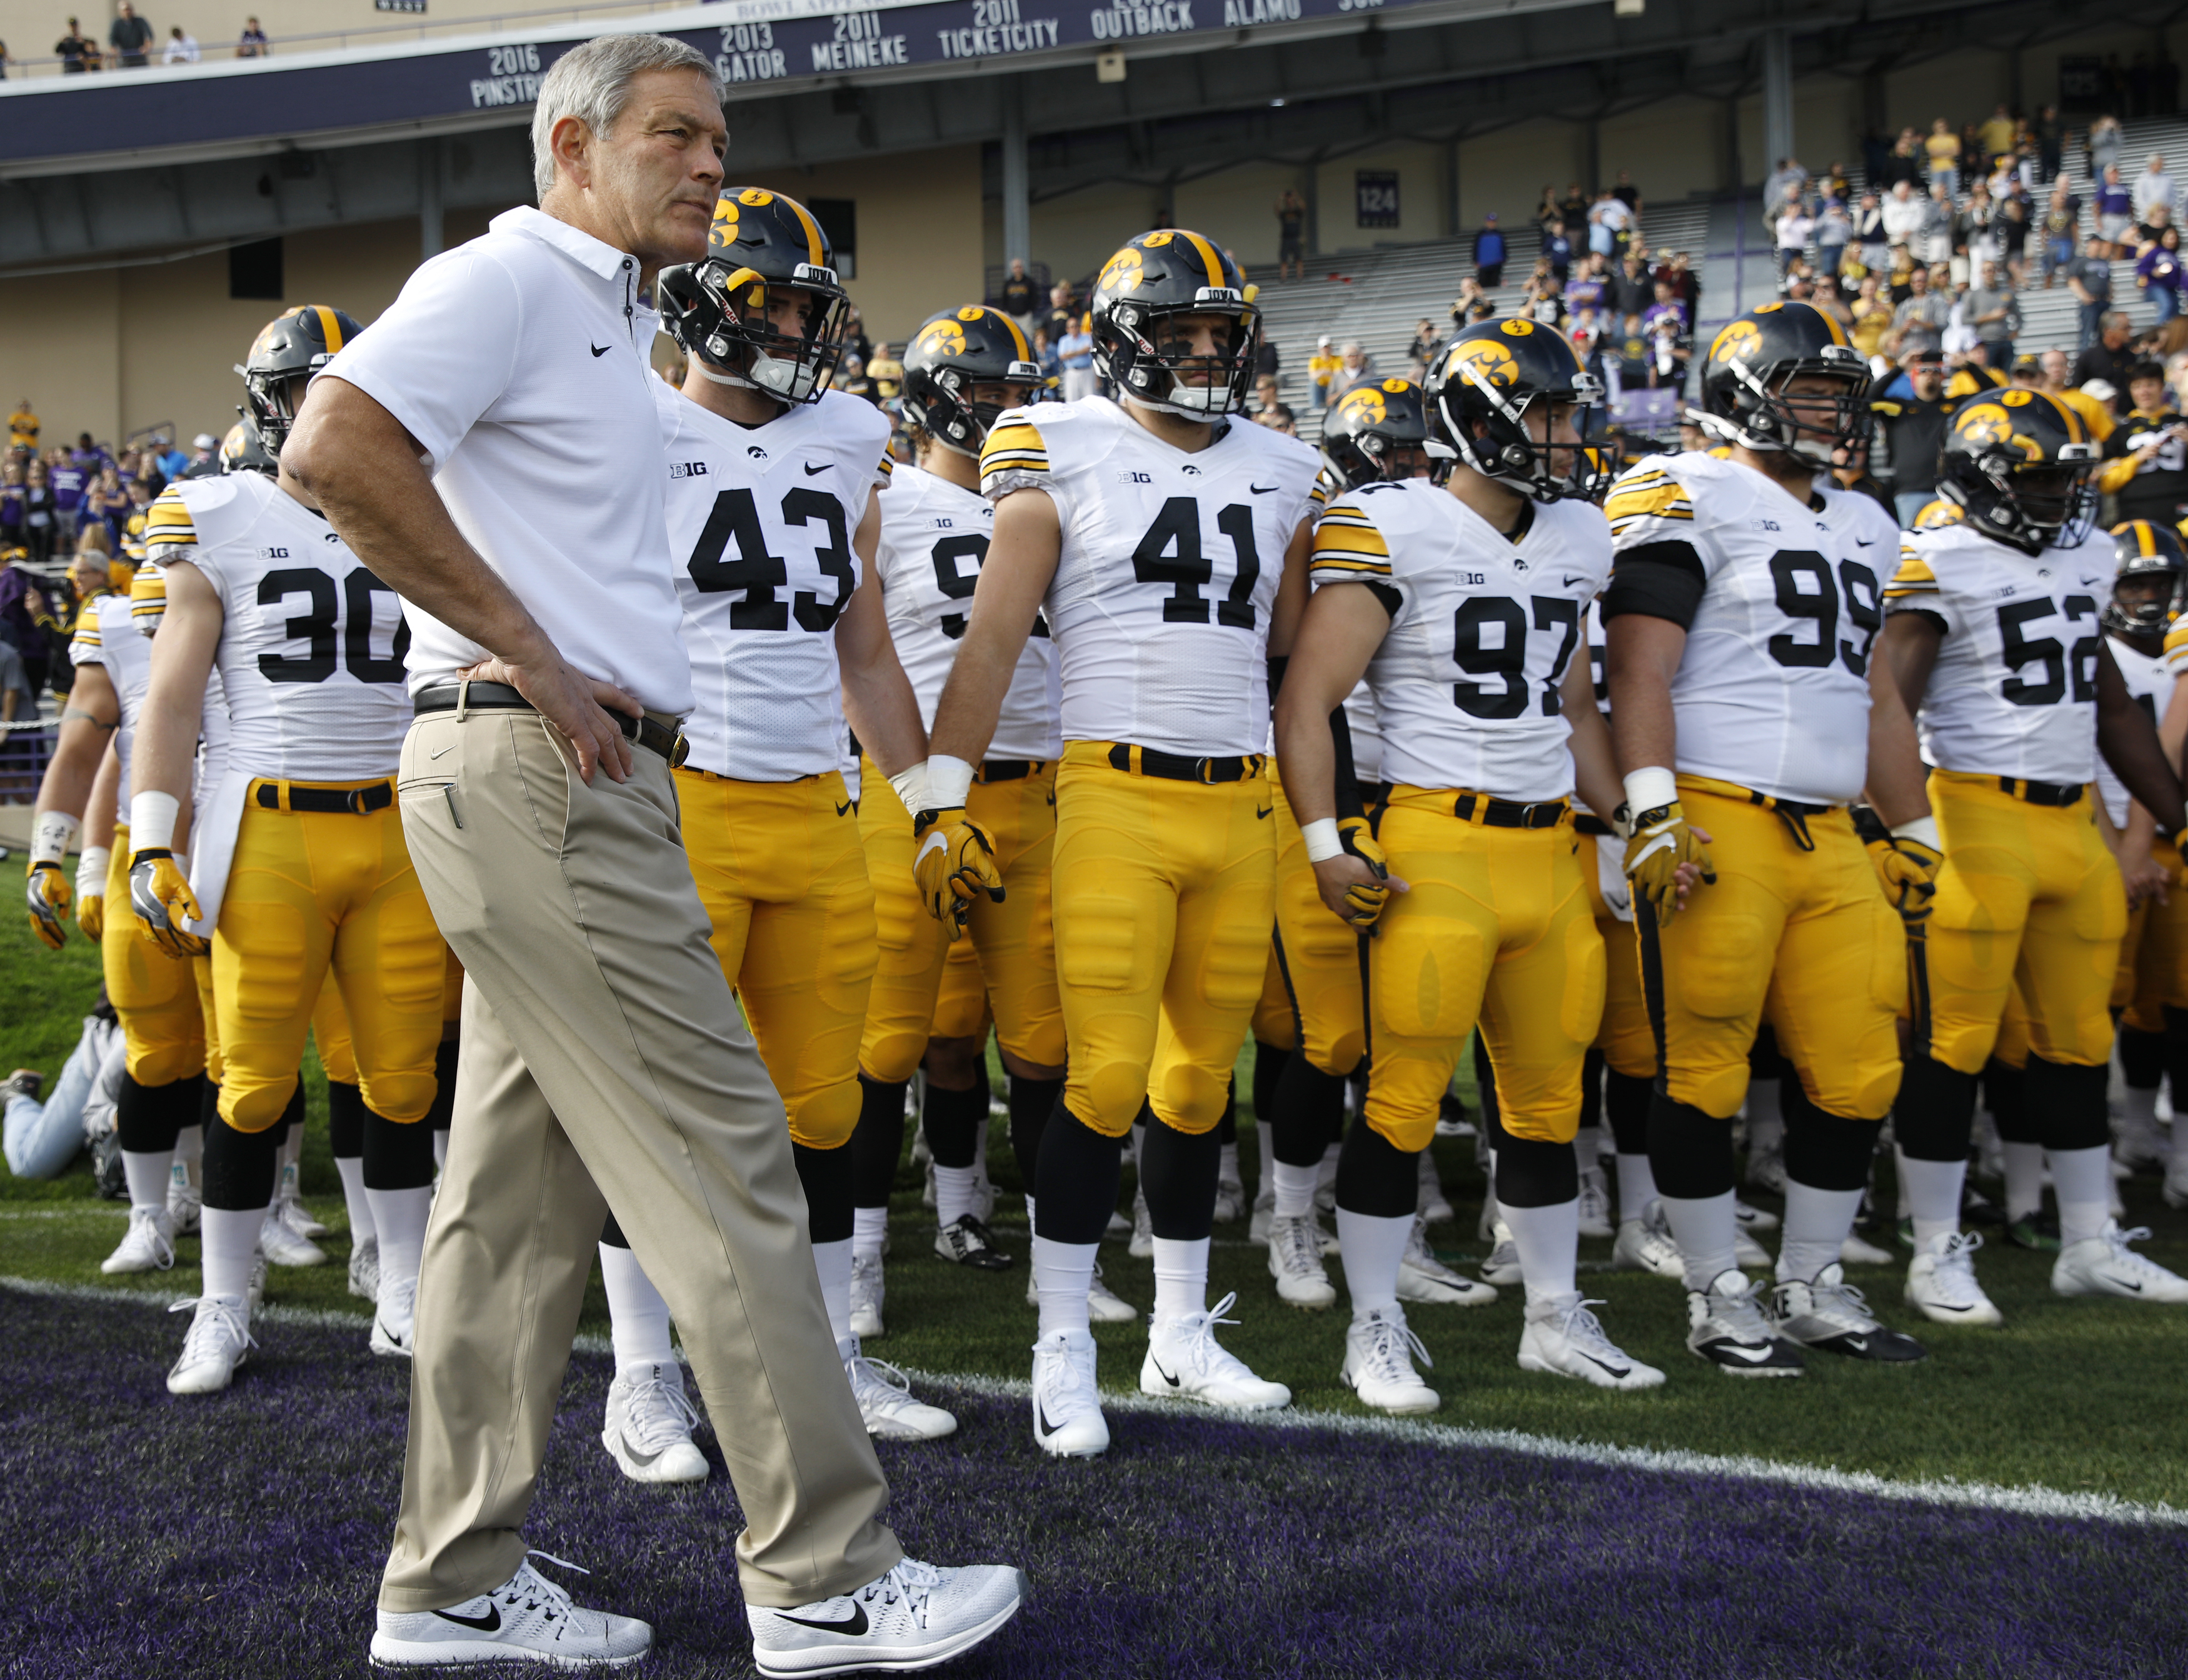 Iowa coach Kirk Ferentz waits with his team.